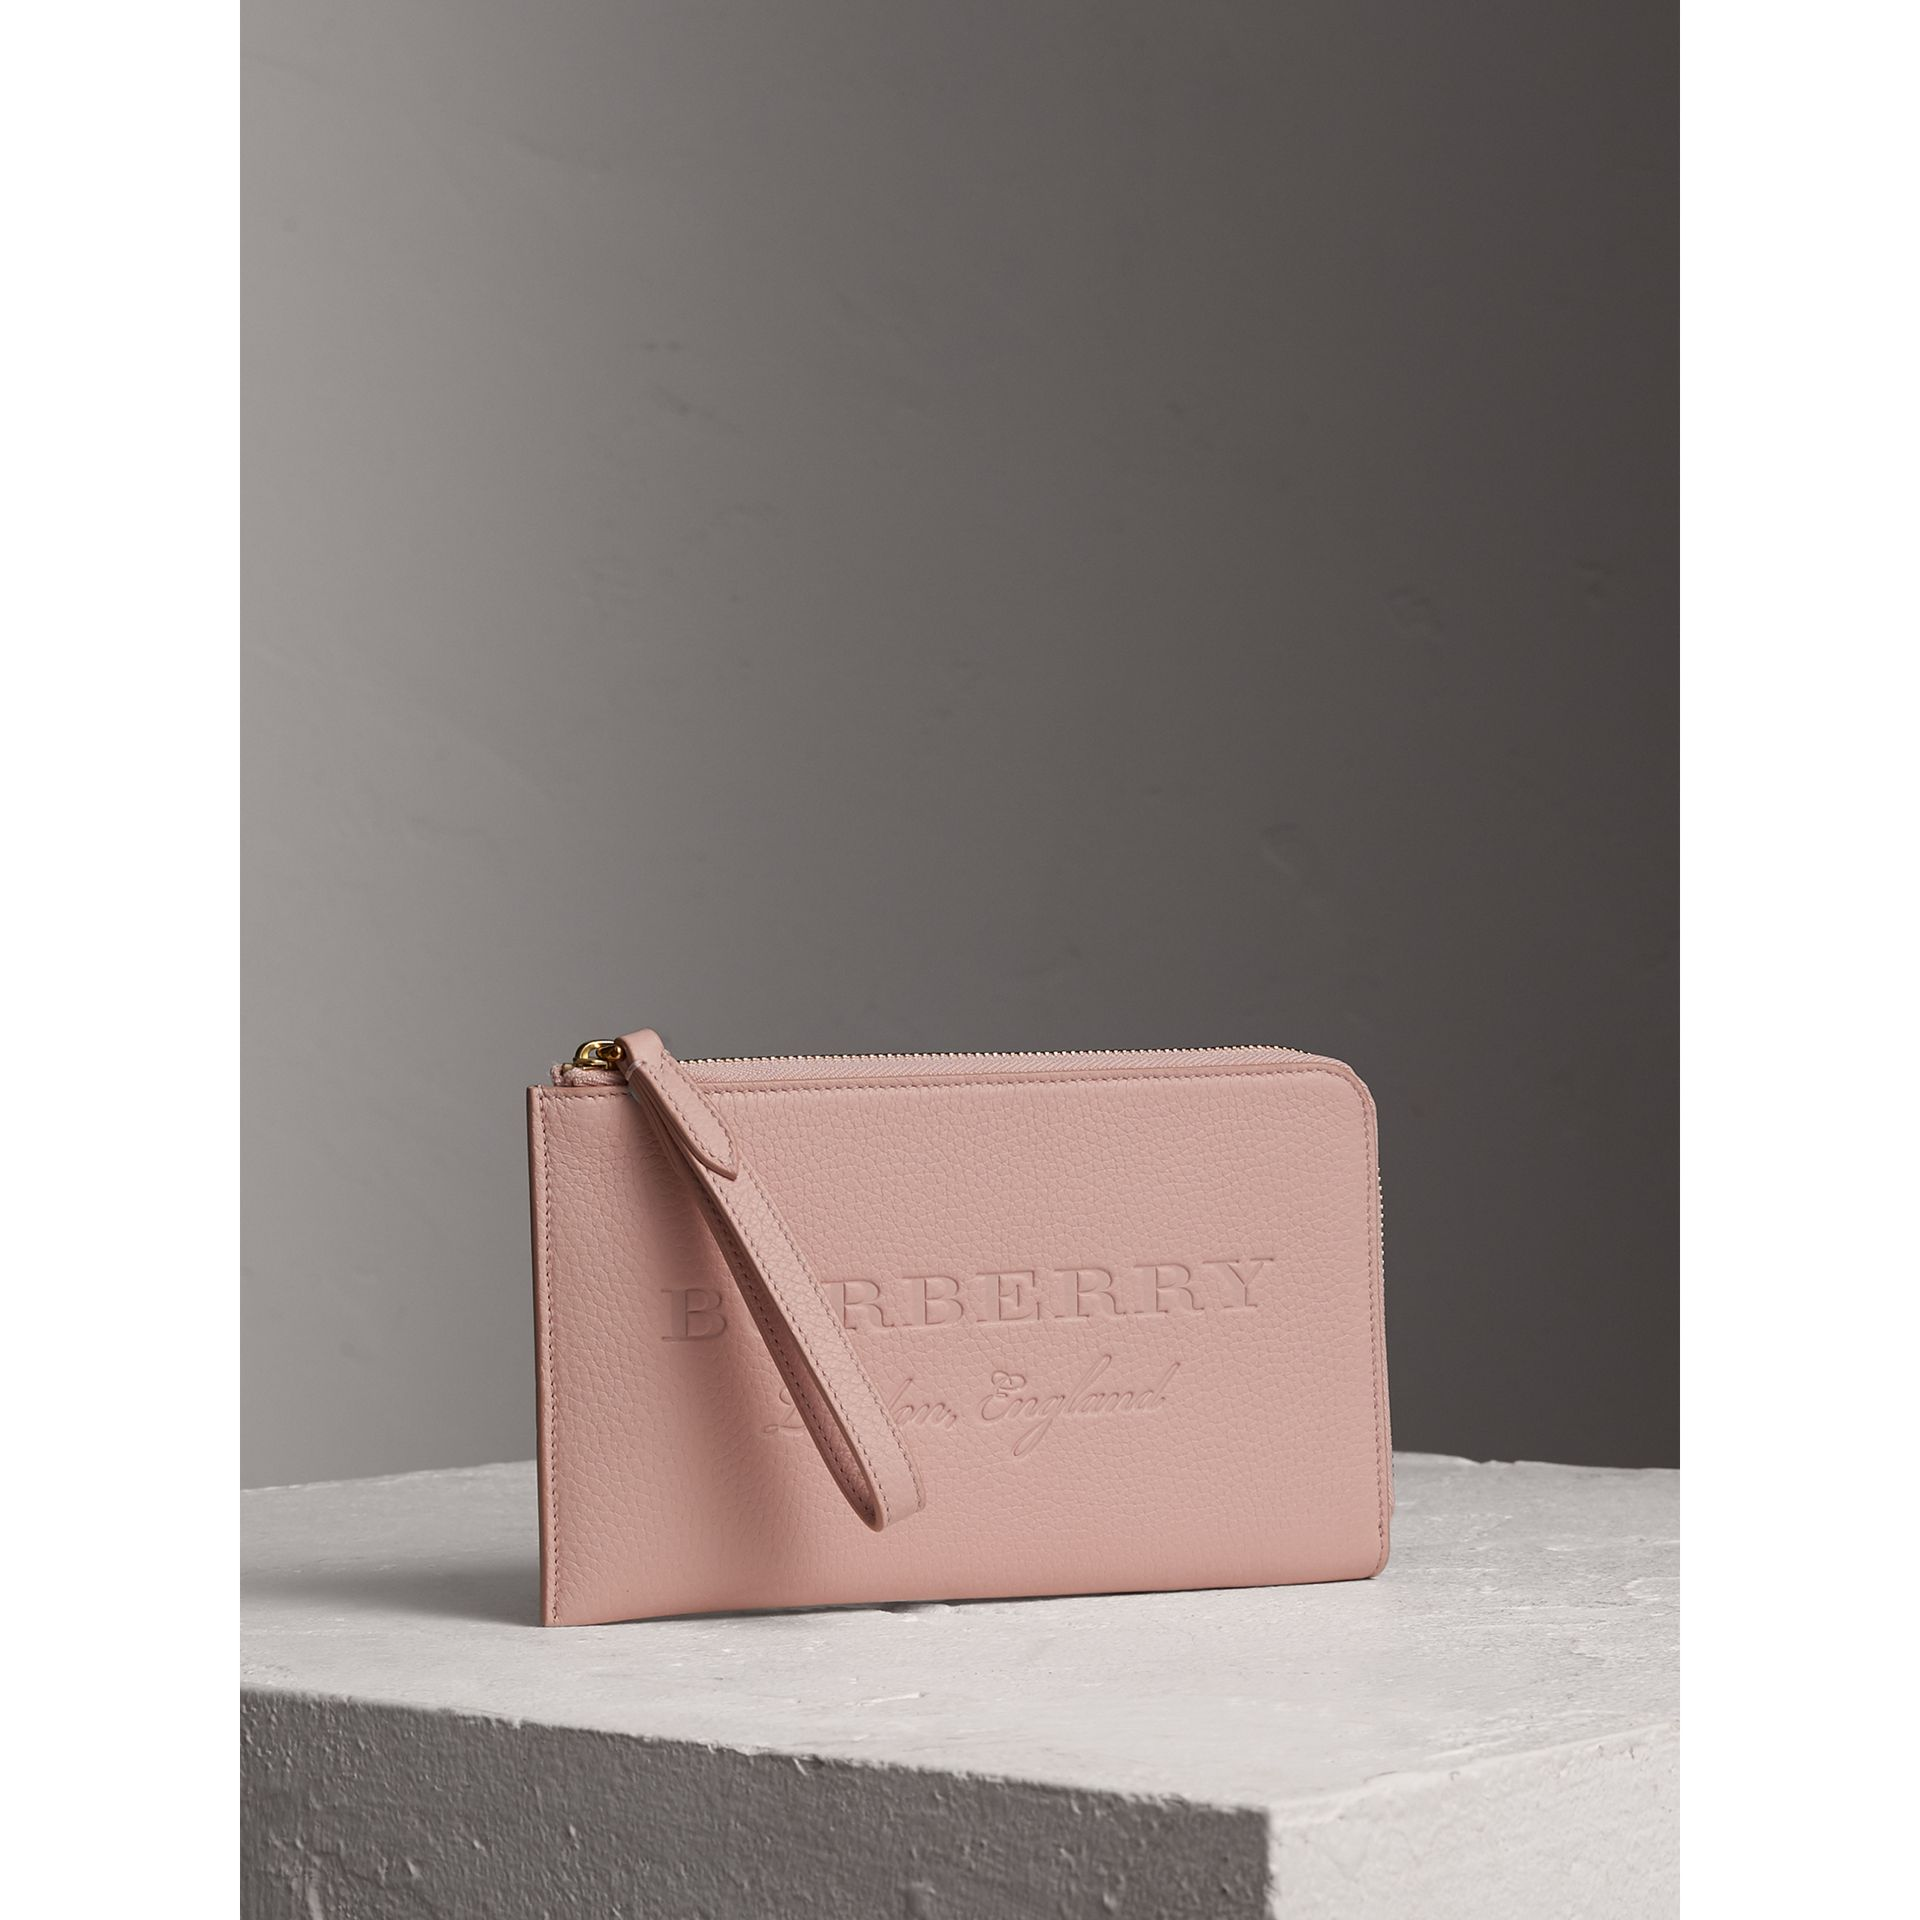 Burberry Embossed Leather Zip Around Wallet: Embossed Leather Travel Wallet In Pale Ash Rose